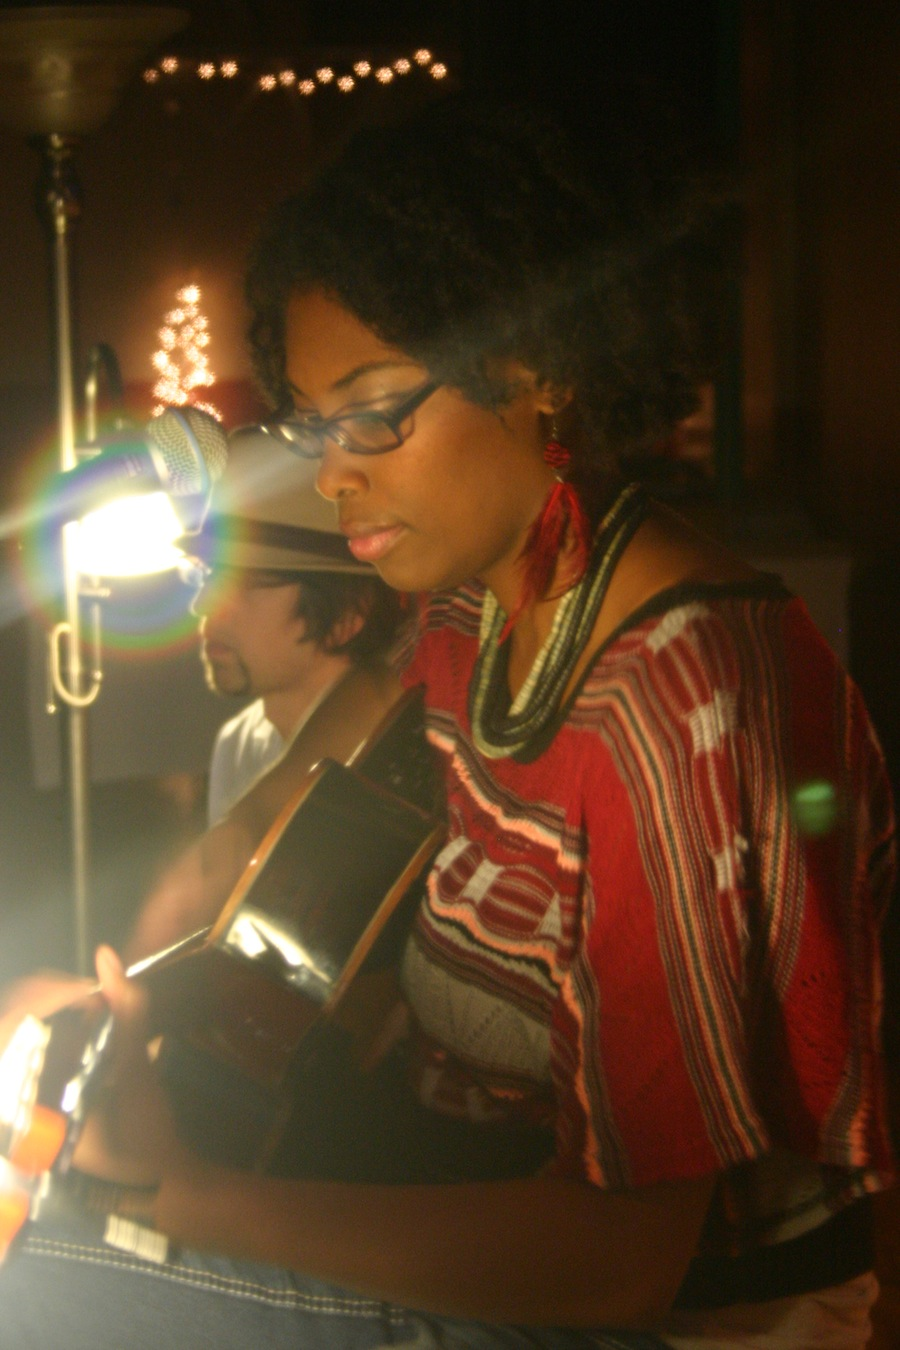 Anitra Jay performing at a Listening Party in Lynchburg, VA.